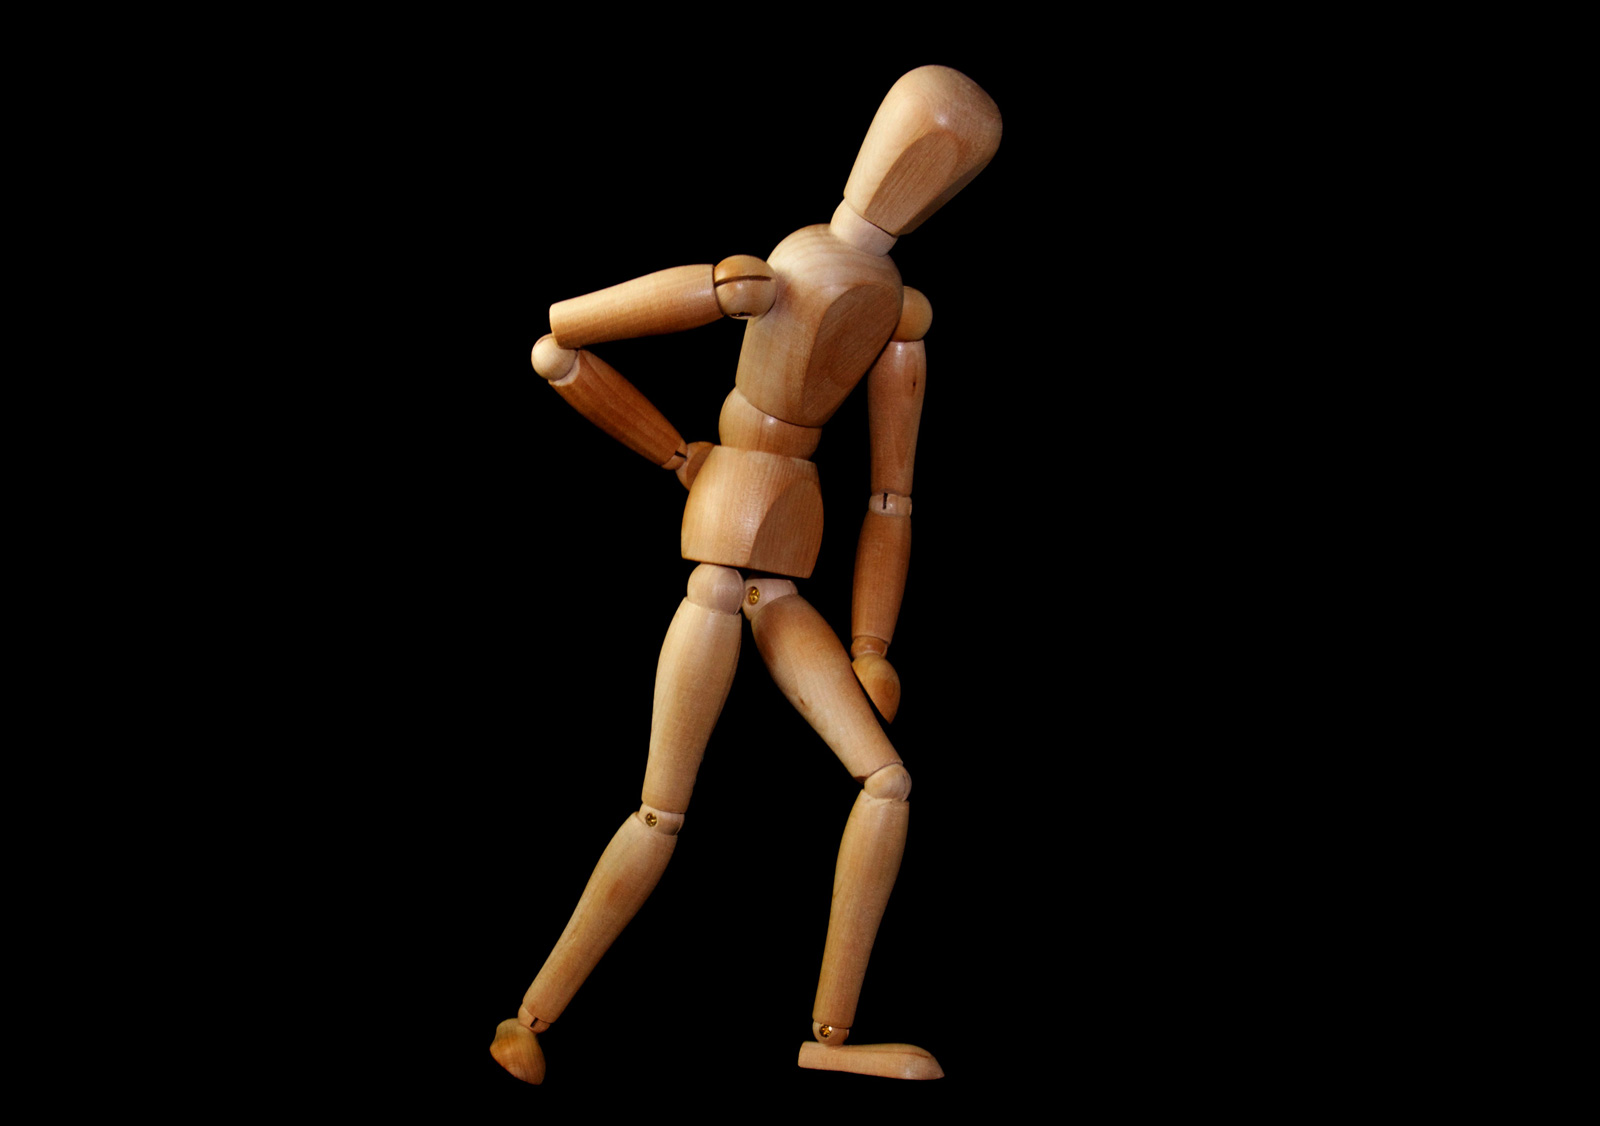 Wooden Figure demonstrating lower back pain risk assess manual handling training mechanical aids plan